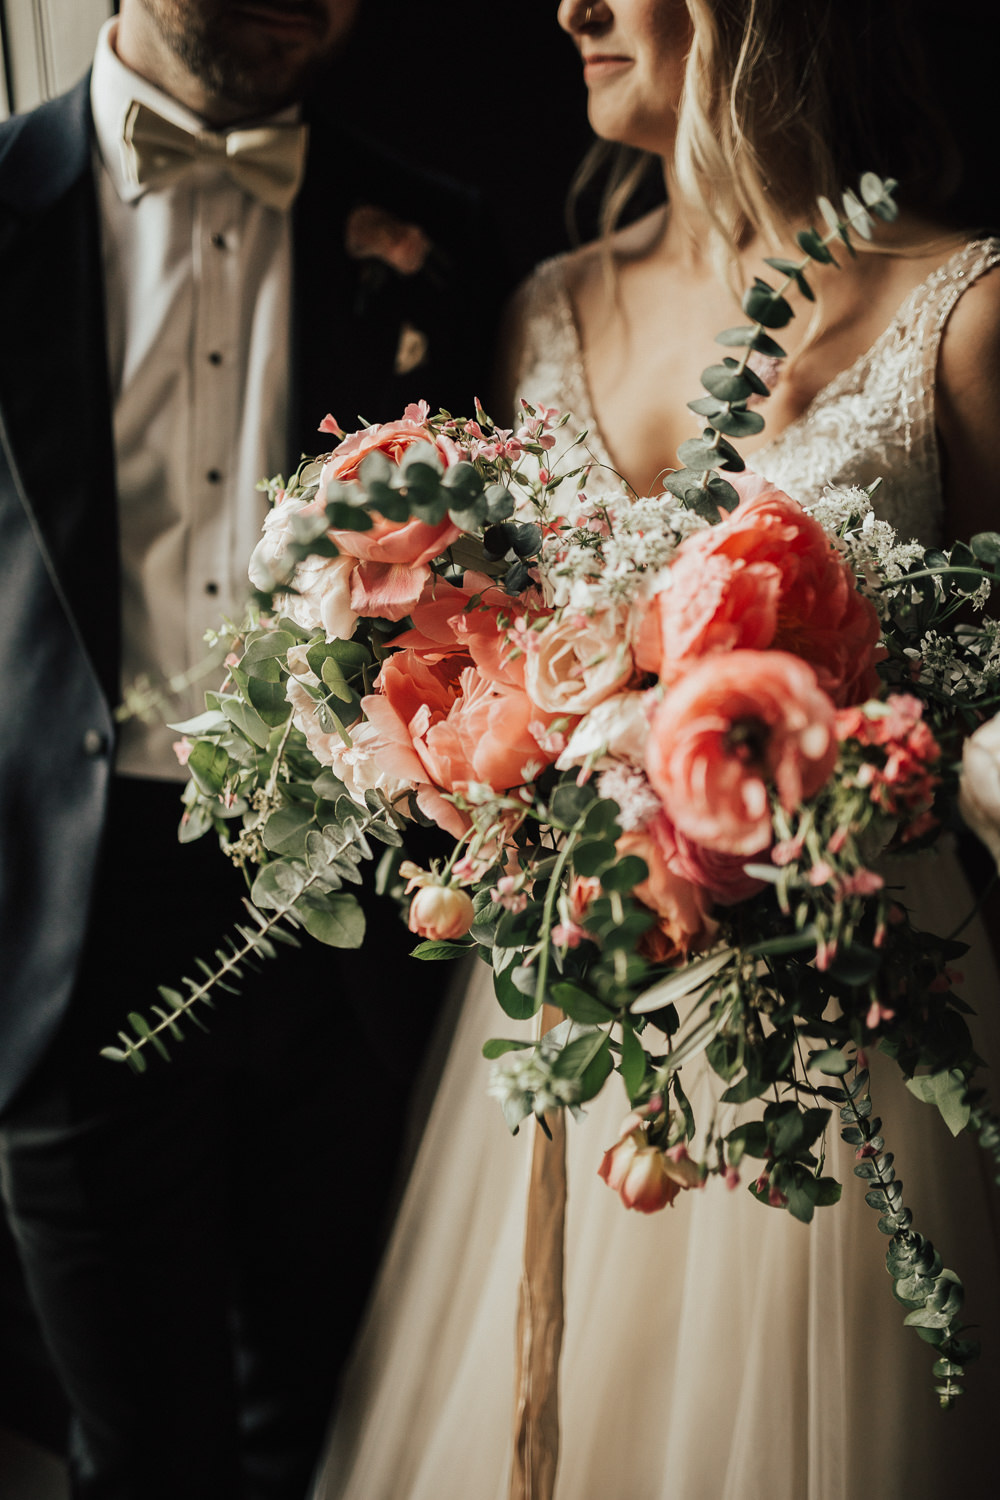 Bride Bridal Bouquet Flowers Coral Peony Peonies Rose Pink Ranunculus Eucalyptus Ribbon Stubton Hall Wedding Darina Stoda Photography